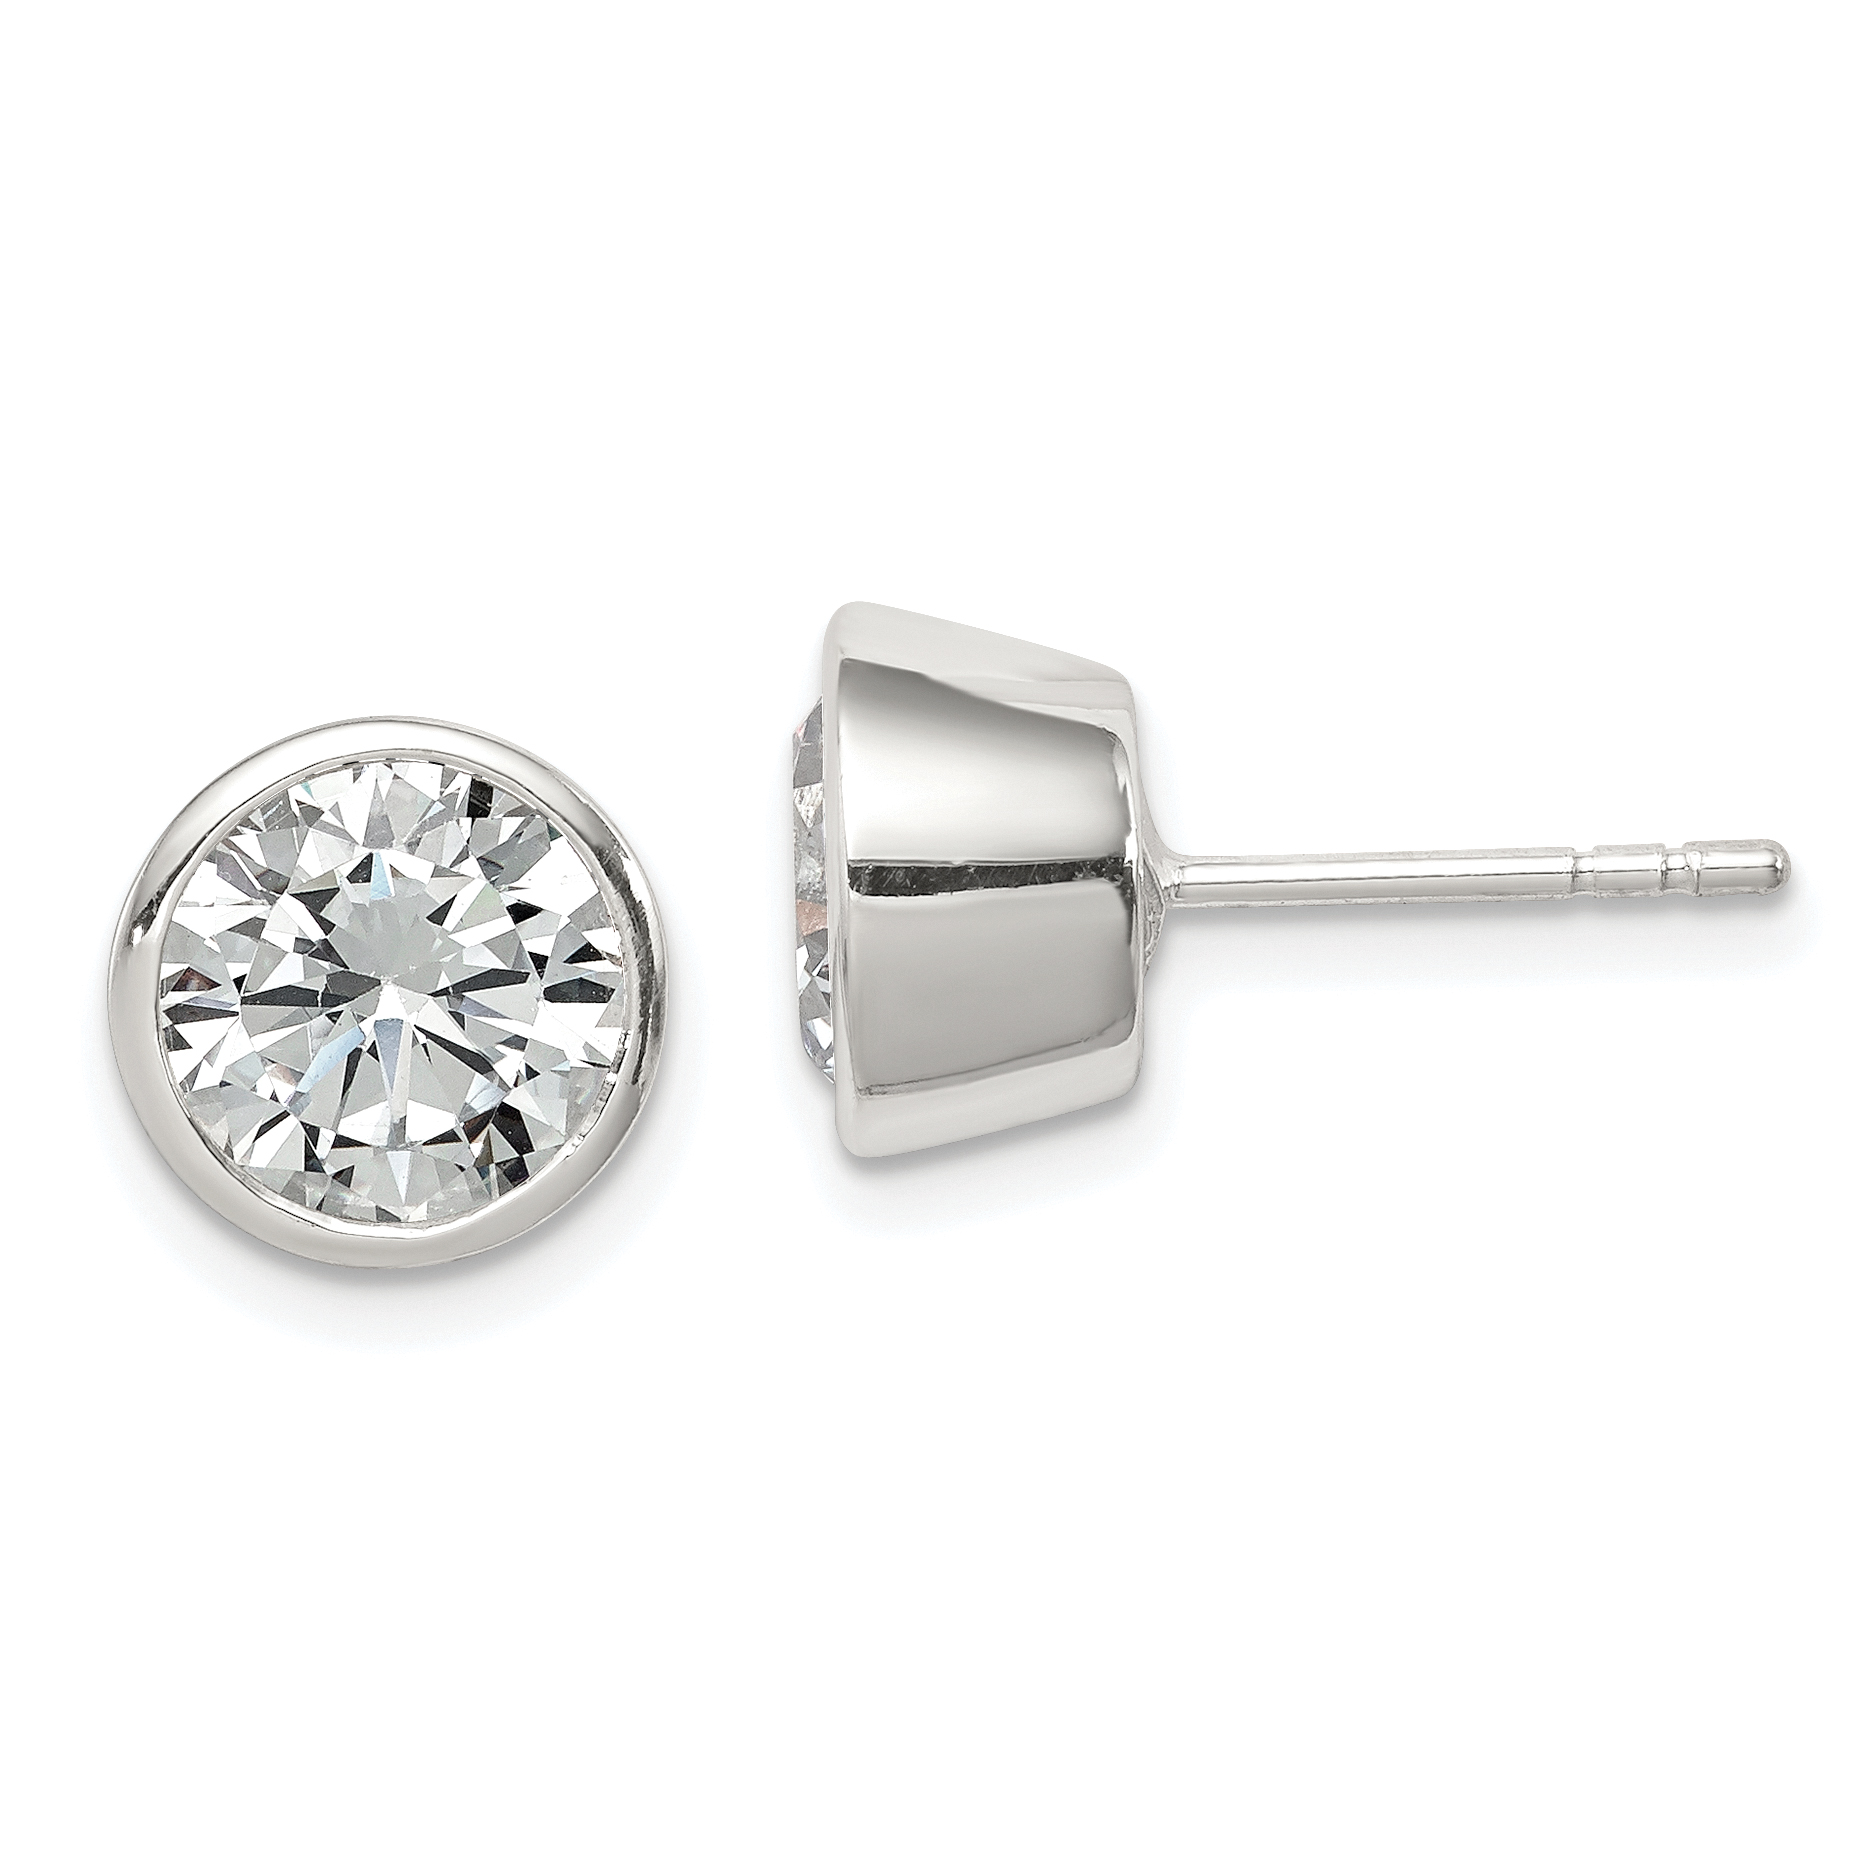 steel co amazon dp pairs stainless mm stud to earrings set